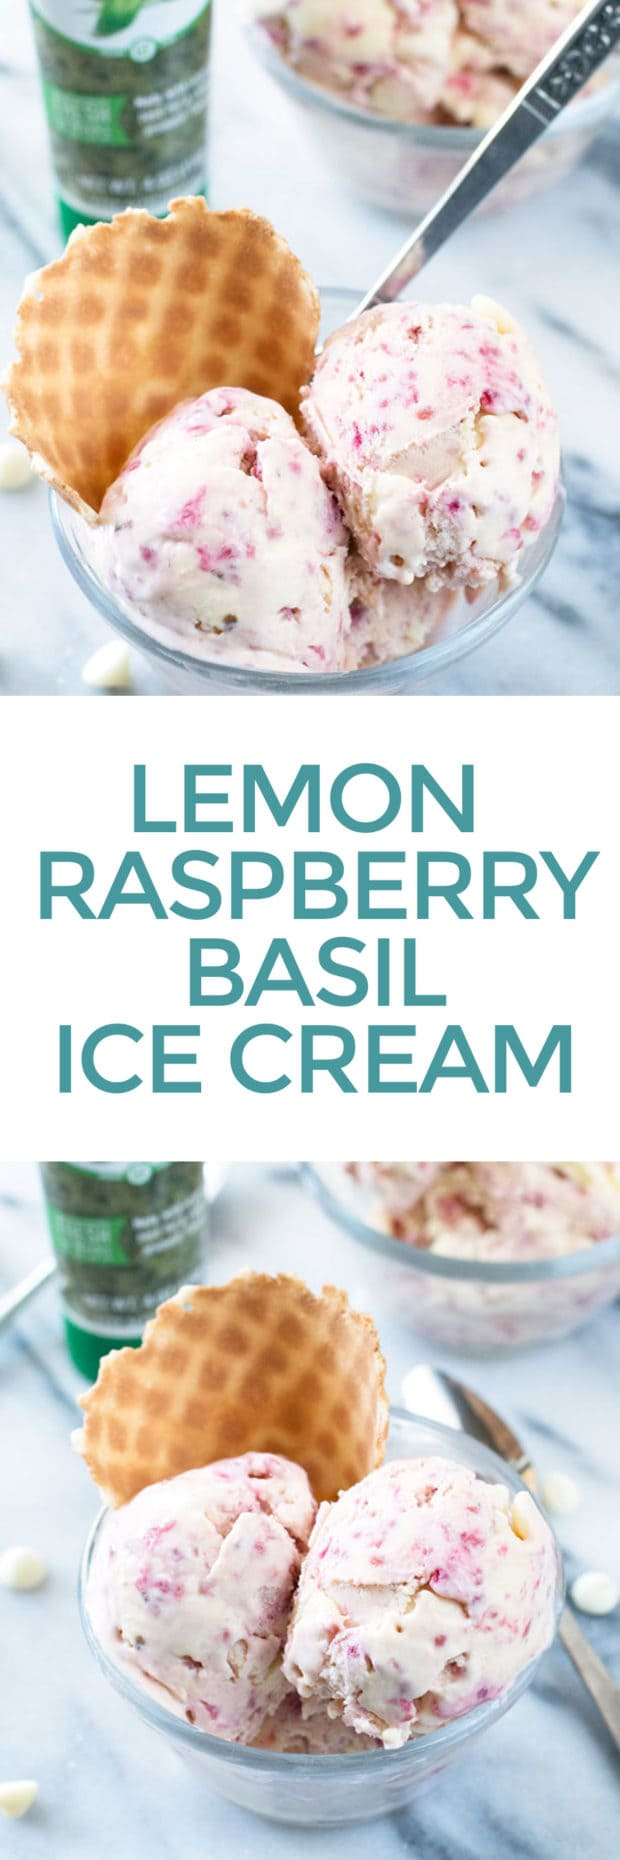 Lemon Raspberry Basil Ice Cream | cakenknife.com